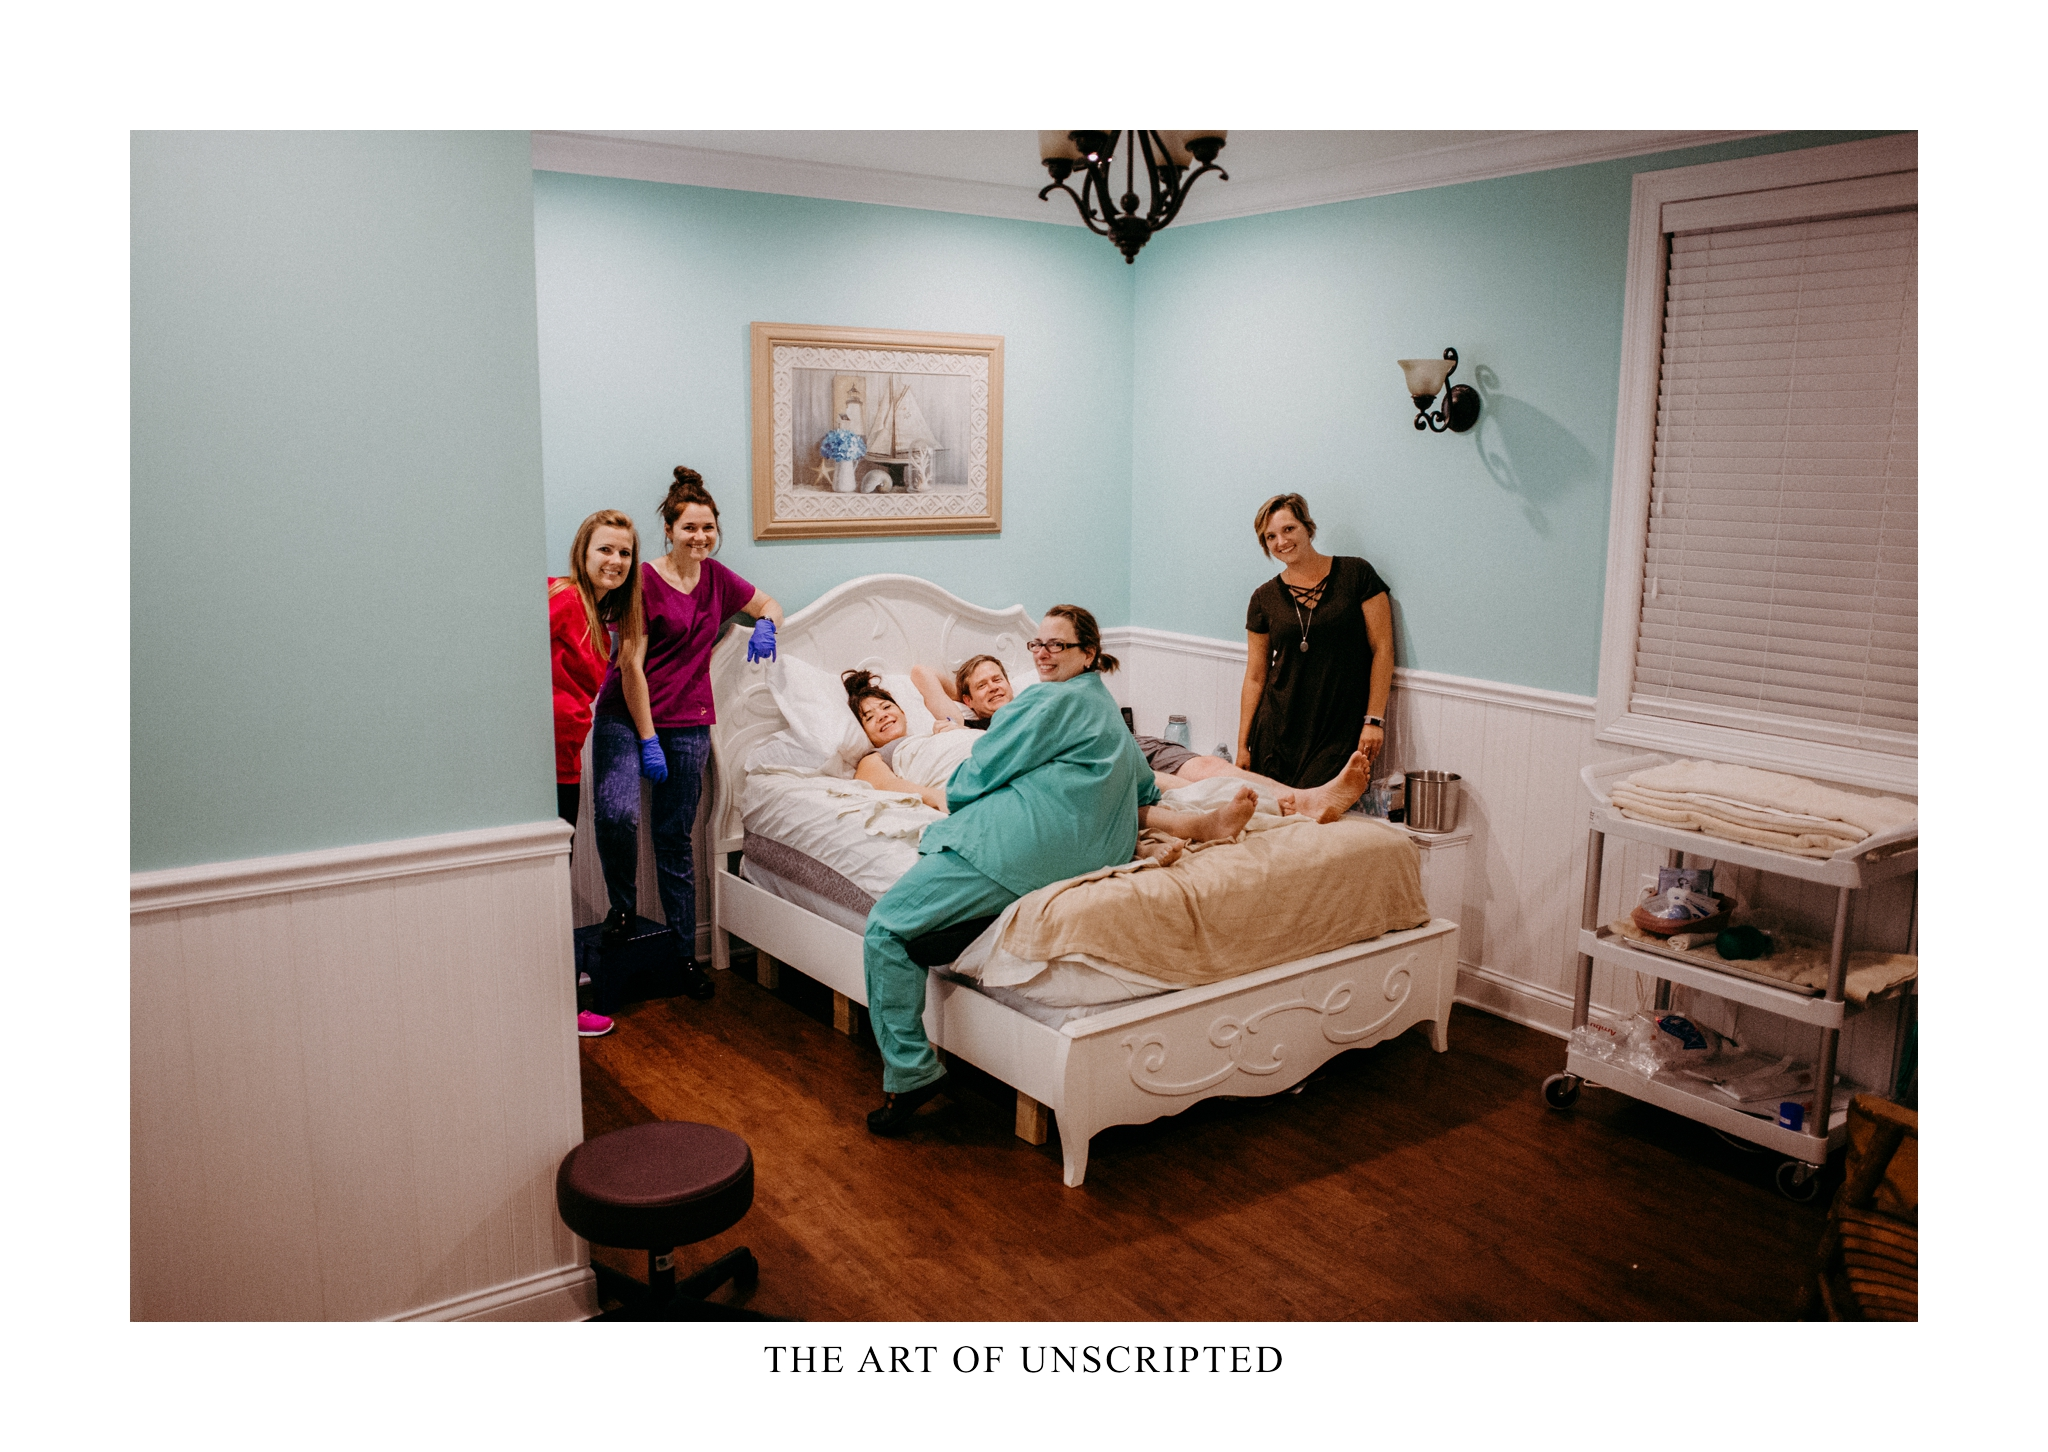 2017-06-10_214046__THE ART OF UNSCRIPTED_SPRINGFIELD MO_BIRTH PHOTOGRAPHER_ DOCUMENTARY_STORYTELLING_417_PHOTOGRAPHER